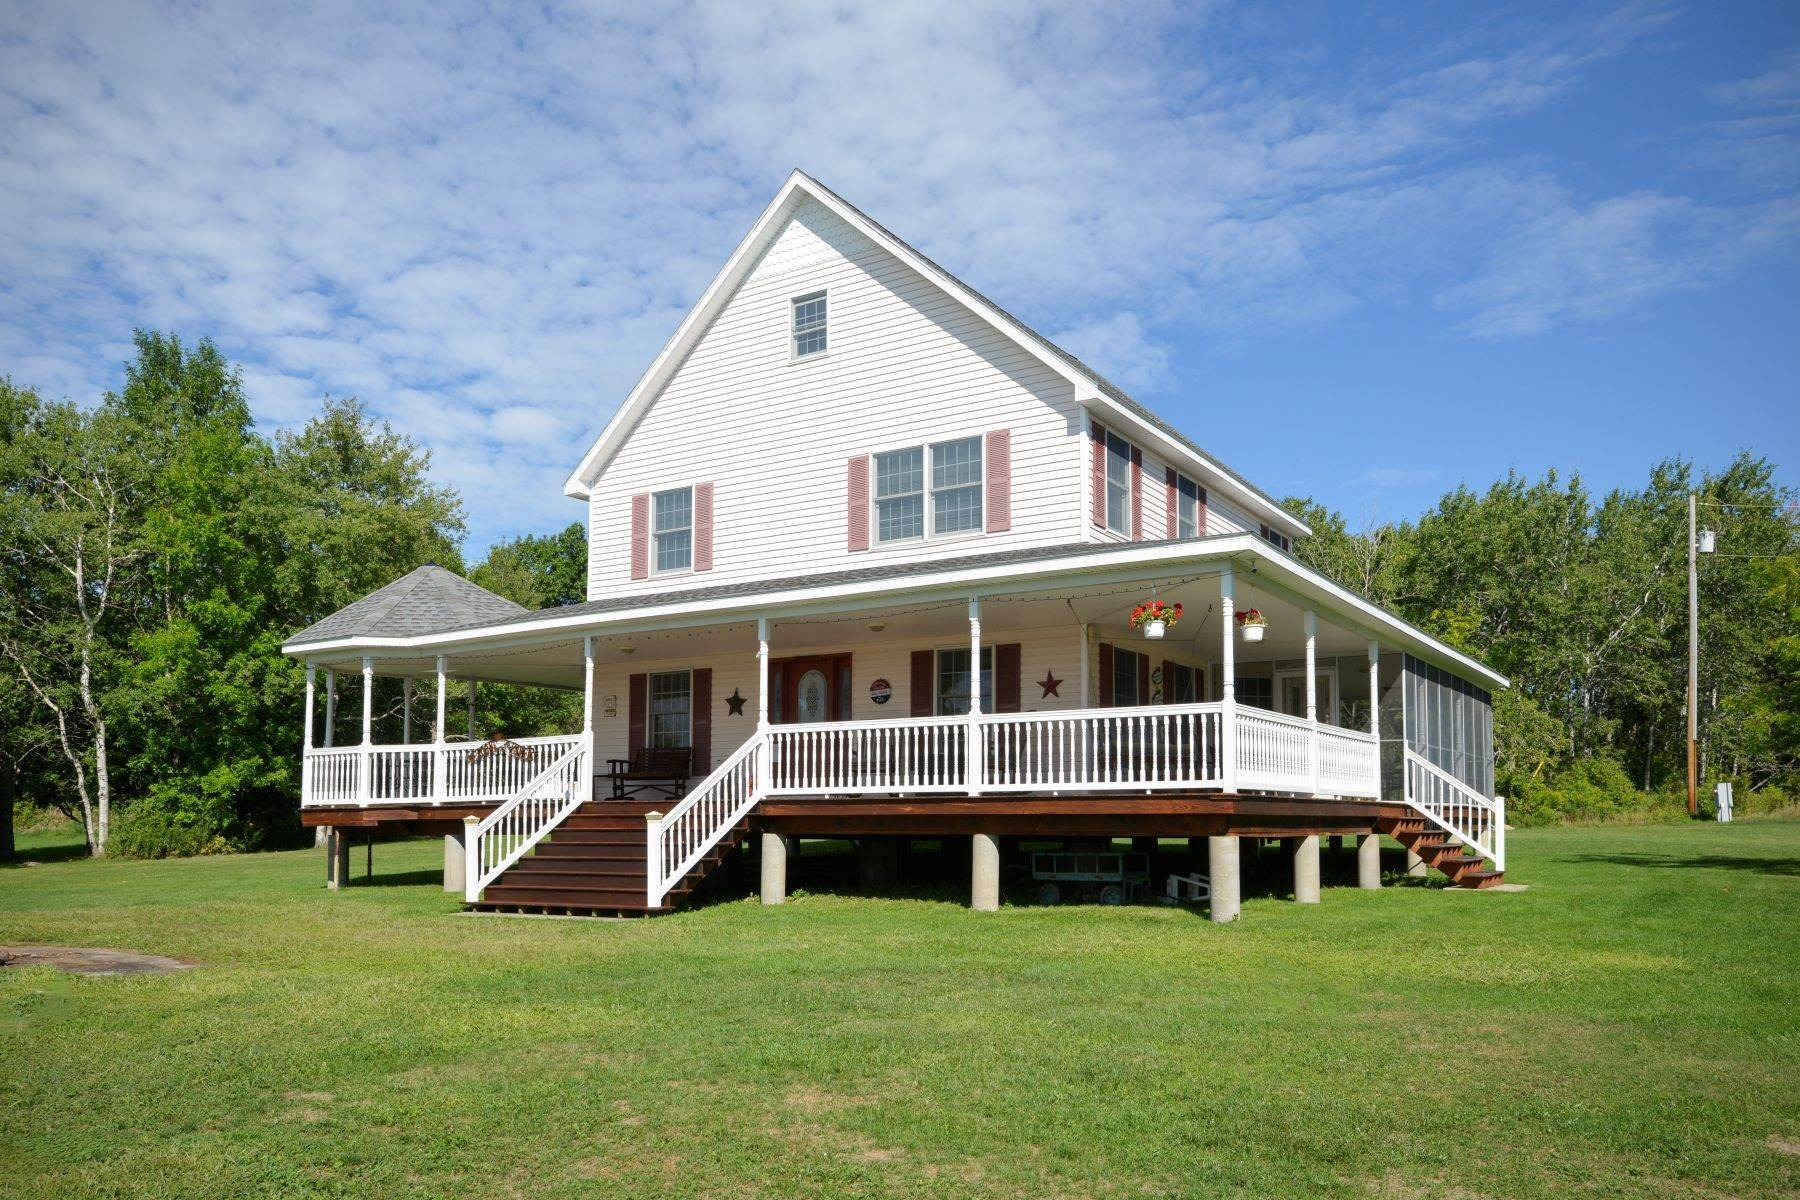 Single Family Homes for Sale at Cottage on Historic Round Island 15616 Round Island Clayton, New York 13624 United States